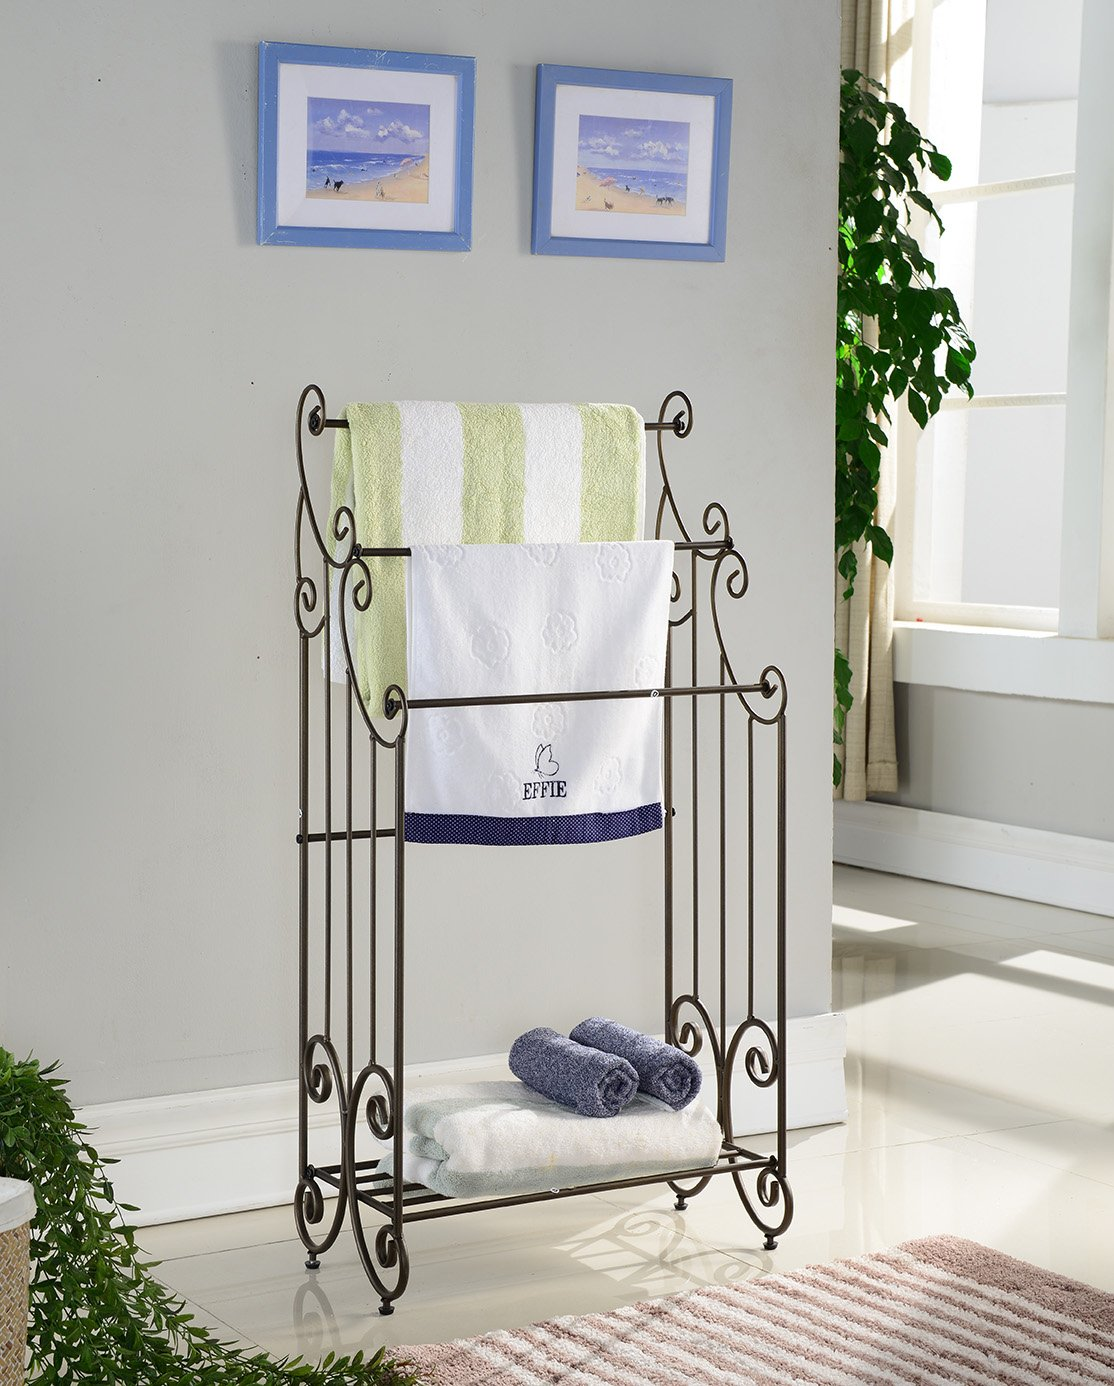 Kings Brand Furniture 1419 Metal Free Towel Rack Stand with Shelf, Pewter